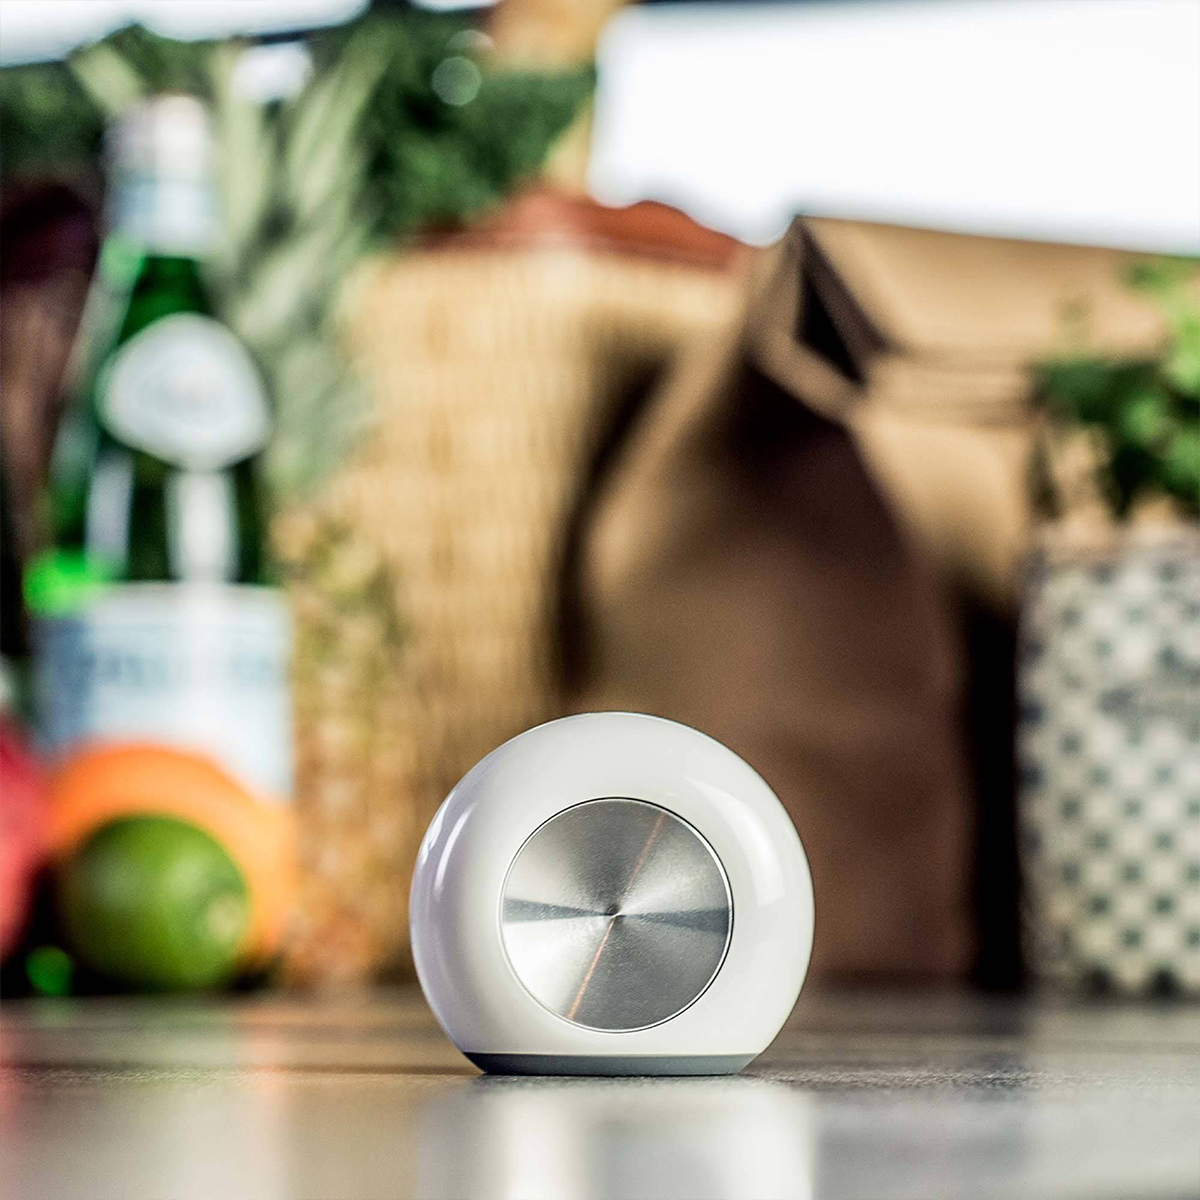 Smart fridge magnet that helps record your grocery list photo